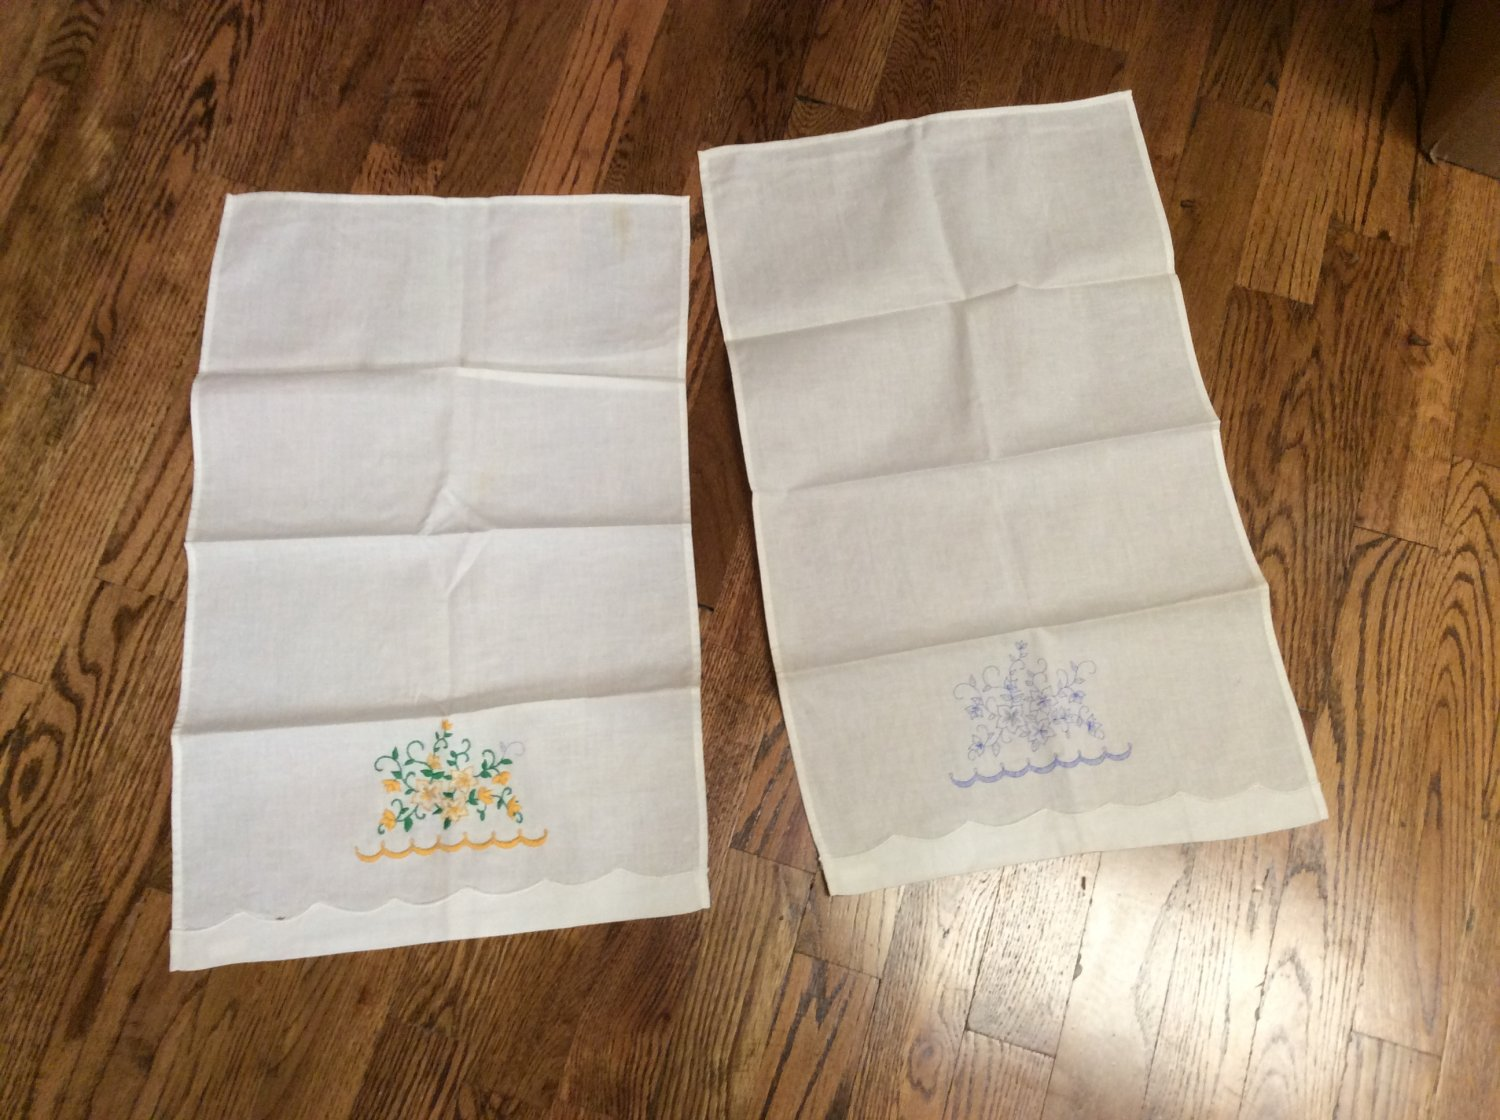 2 Pillow Case Sets 2 Place Mats Embroidery Started but Unfinished